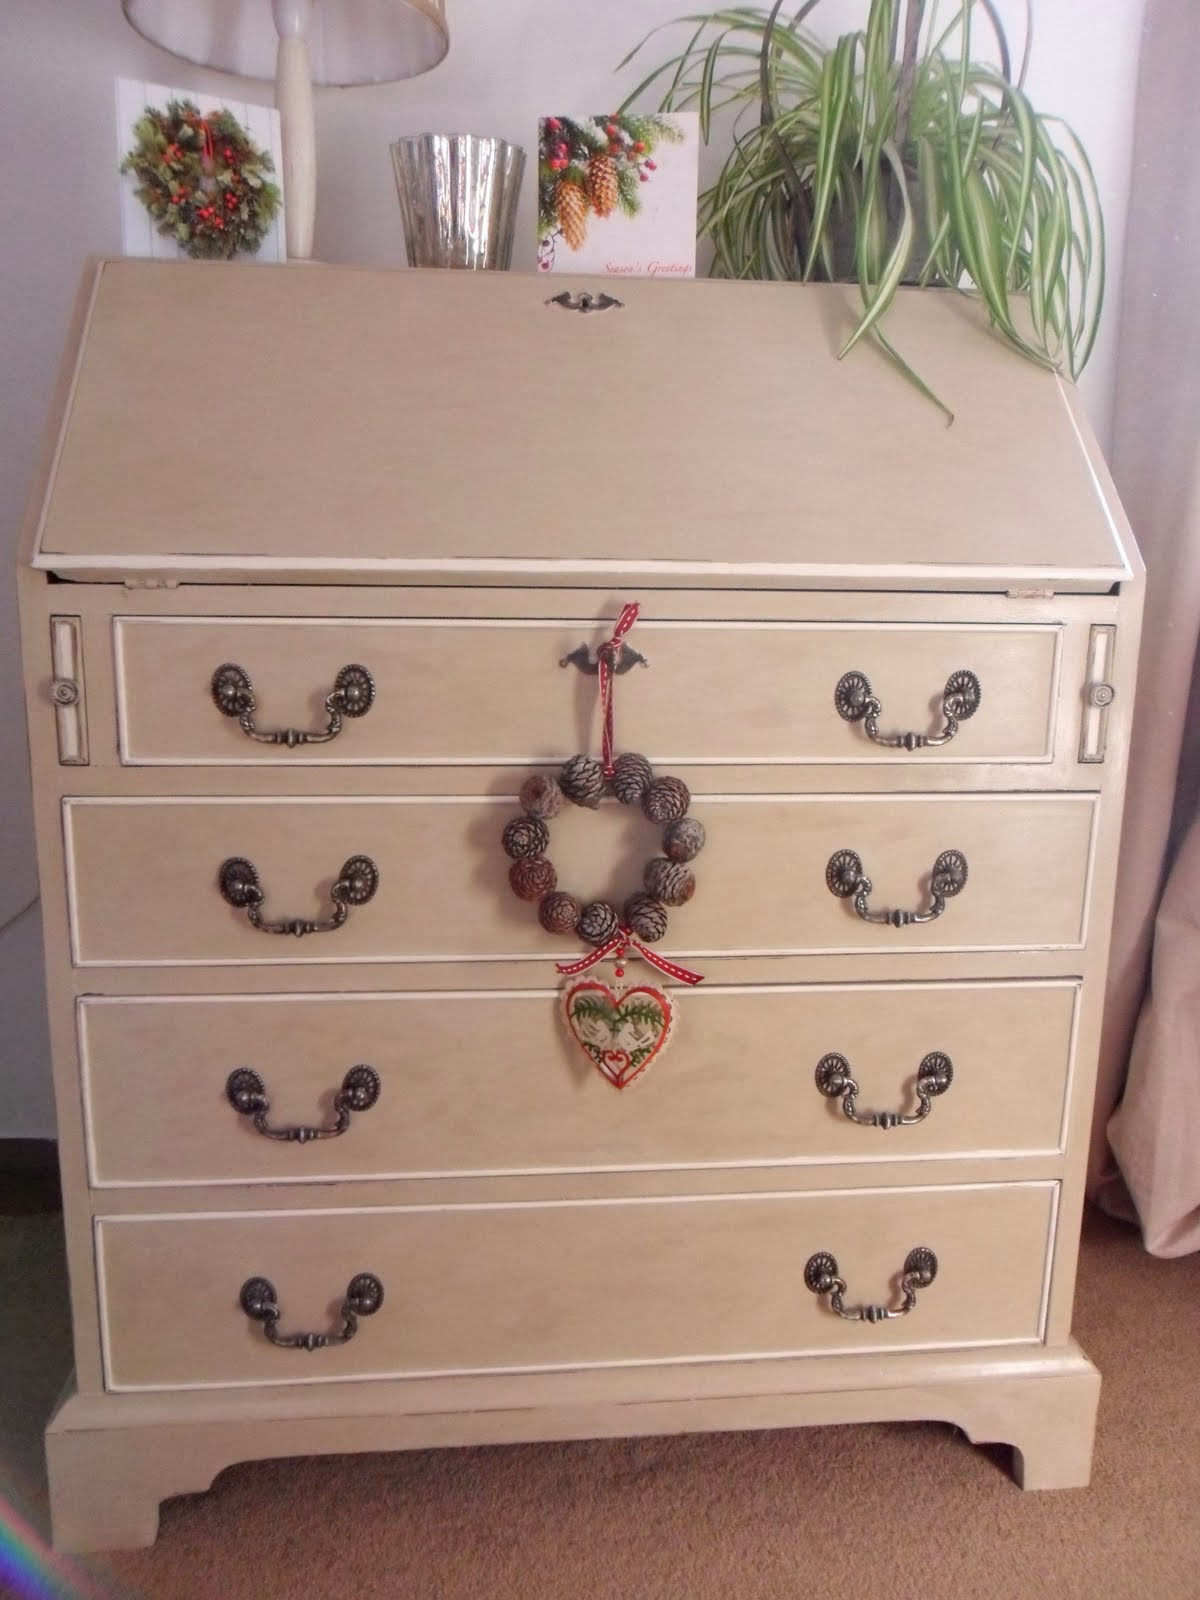 Gillyflower Painted Bureau In Annie Sloan Chalk Paint. French Country Kitchen Lighting. Kitchen Hood Filters. Broan Kitchen Exhaust Fans. Kitchen Storage Cart. How To Install Crown Molding On Kitchen Cabinets. Kitchen Track Lighting. Gas Kitchen Range. Kitchen Islands With Seating For 4